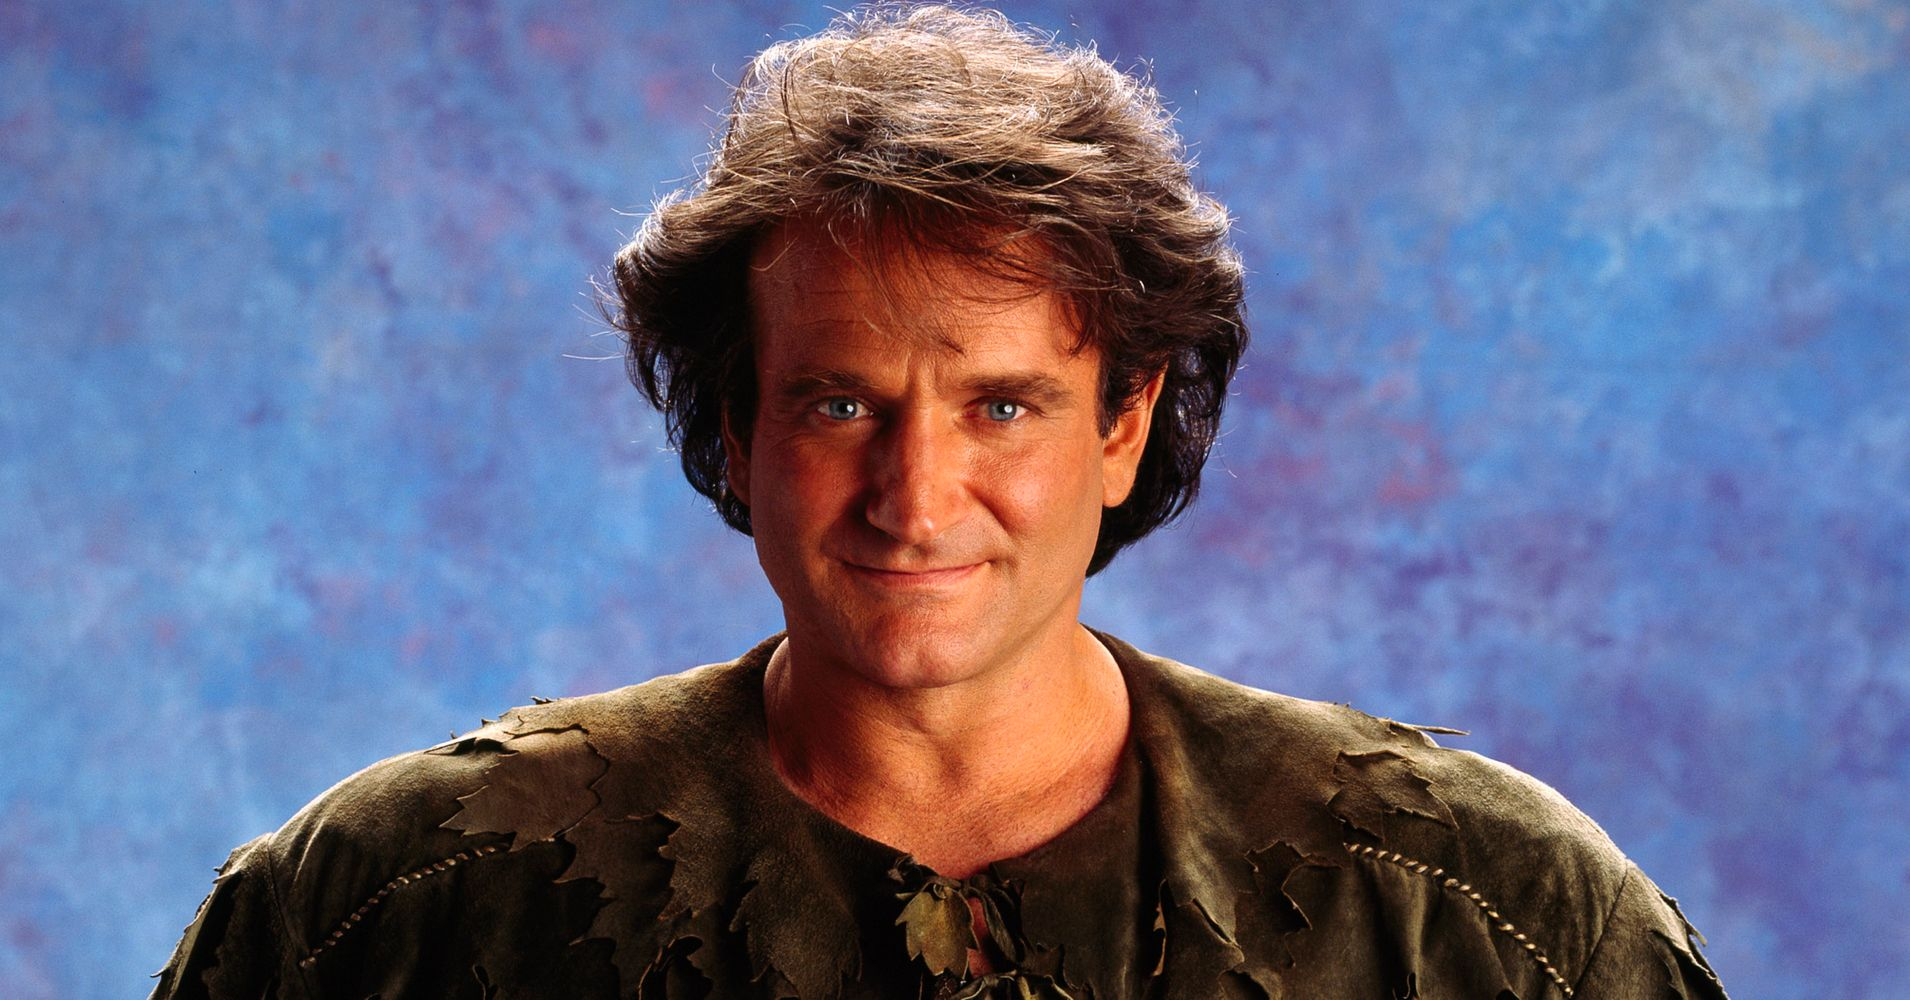 About That Time Robin Williams Mooned The Cast Of 'Hook ...